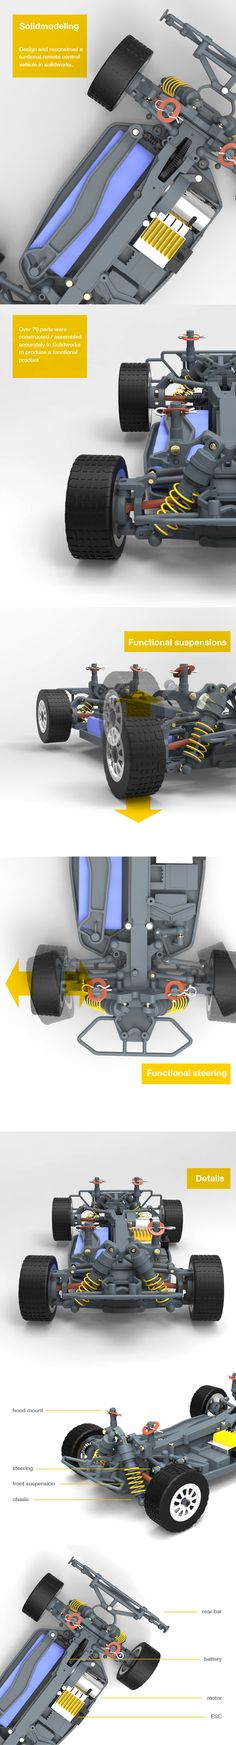 Solidworks designed functioning prototype